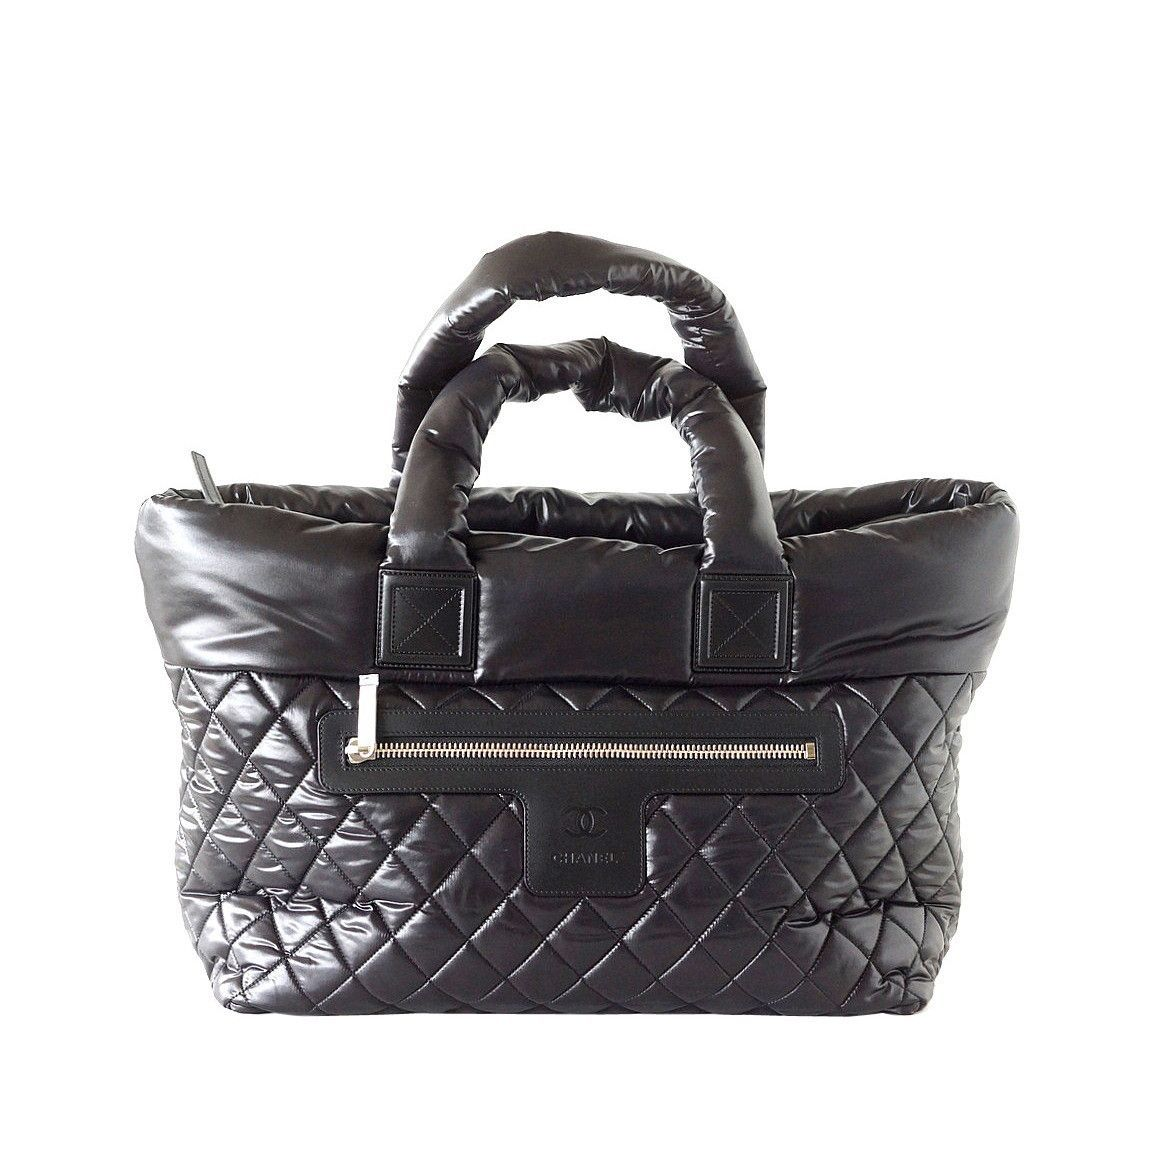 d75ebb6a87e2 Chanel Bag Coco Cocoon Black Tote Limited Edition New | Handbag ...